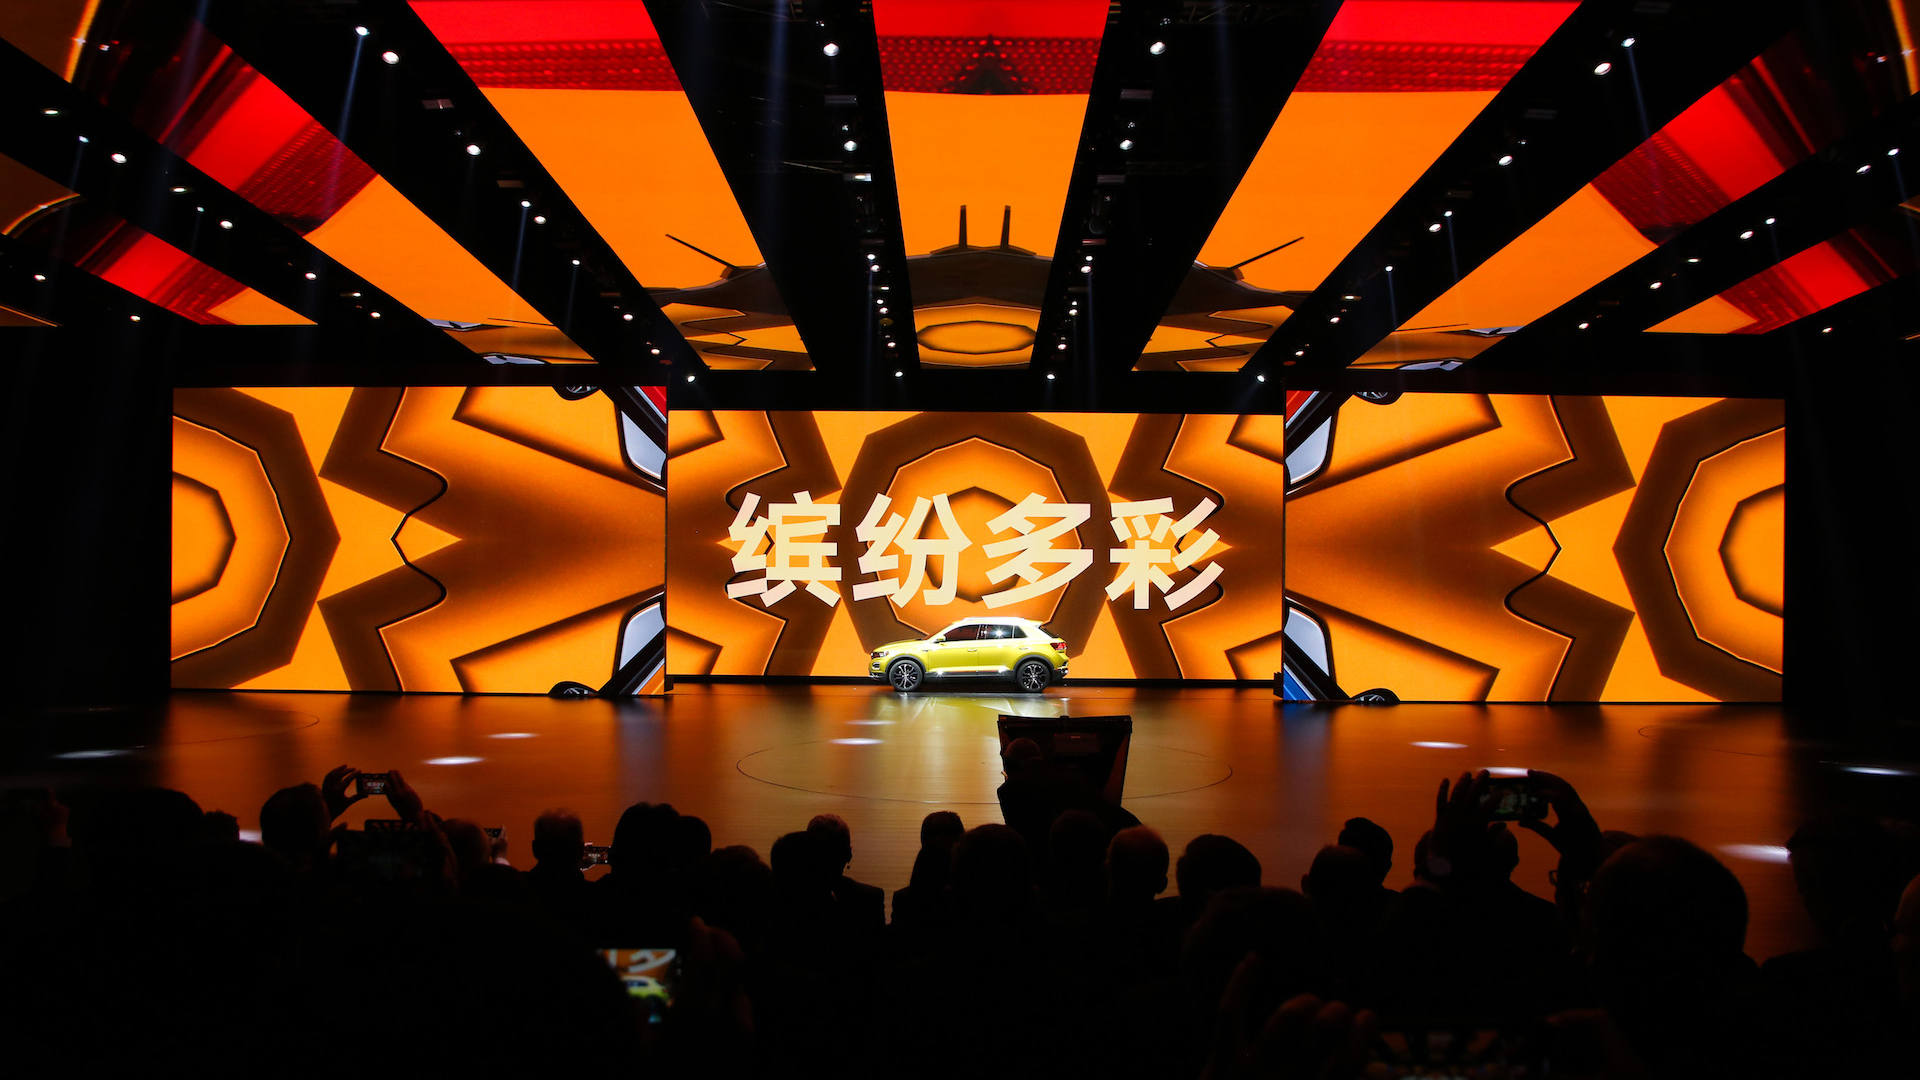 A yellow car stands in front of an orange LED wall.